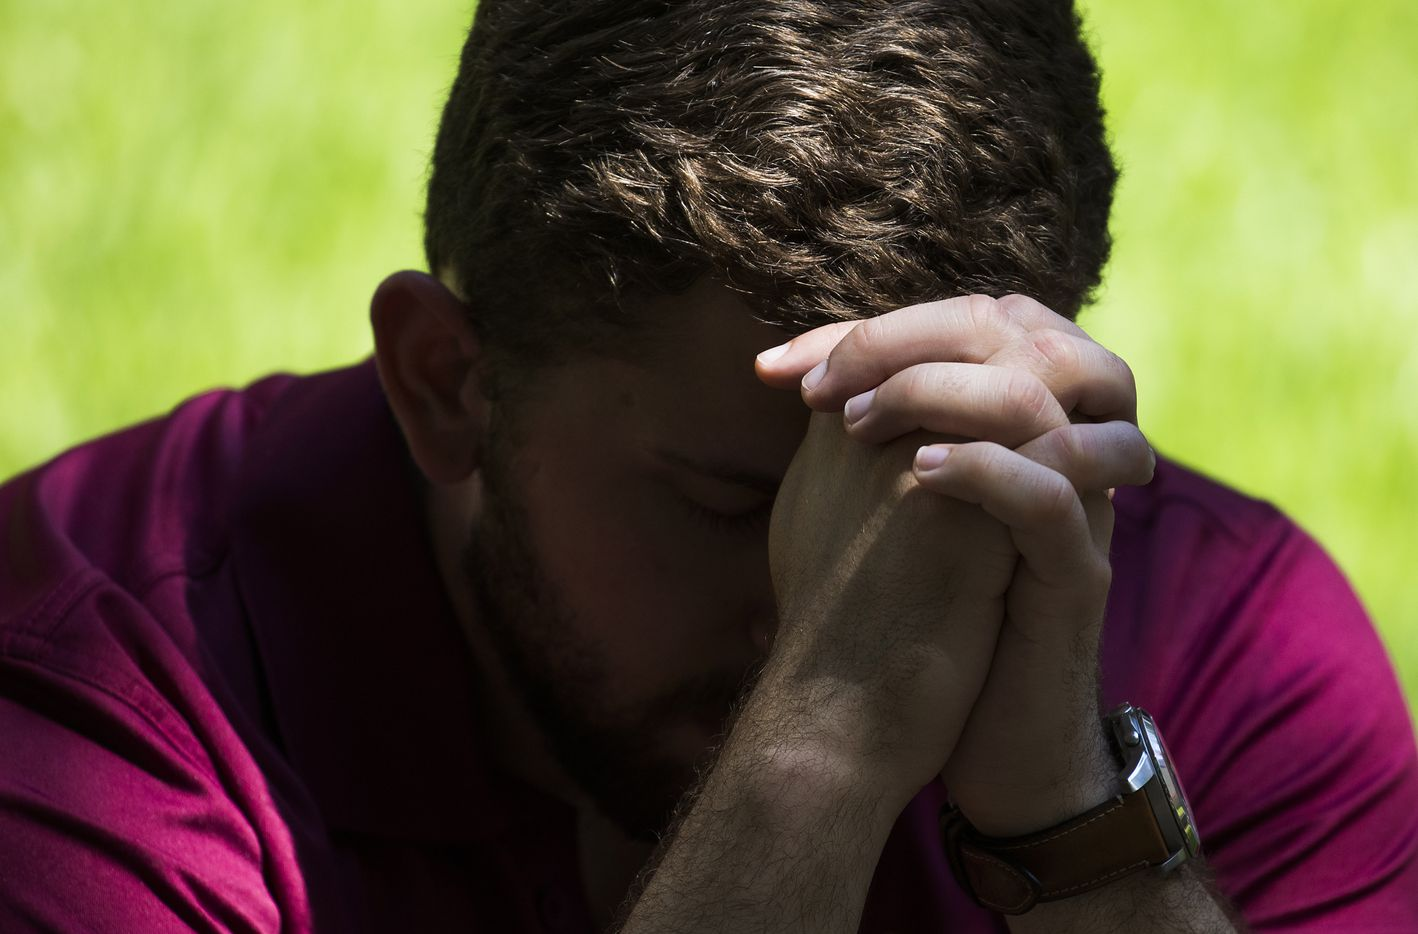 Dakota Loupe bows his head in prayer during a day of remembrance for last year's police ambush organized by Faith Forward Dallas at Thanks-Giving Square.